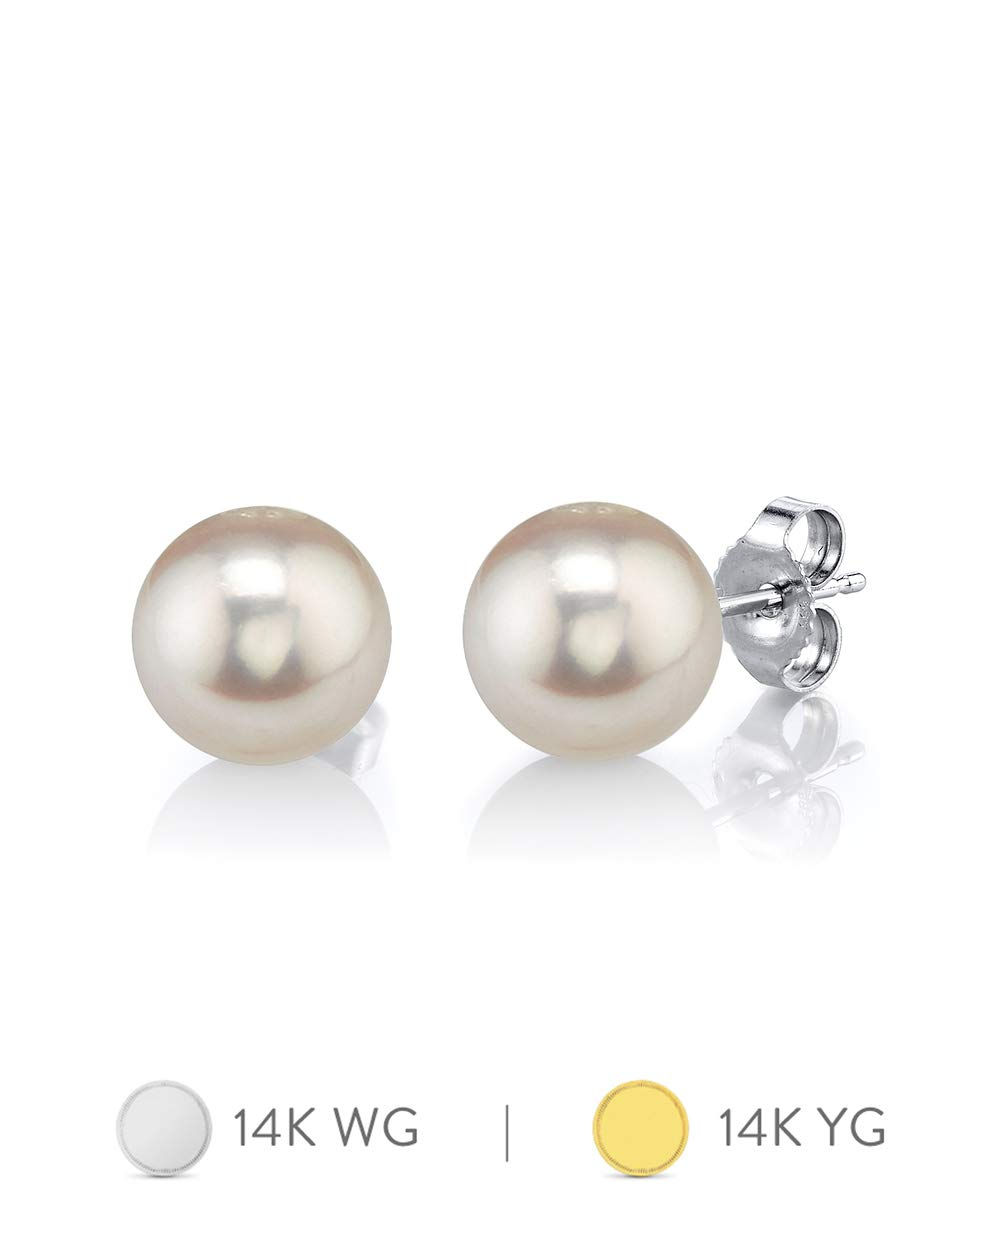 THE PEARL SOURCE 14K Gold 7-8mm Round White Freshwater Cultured Pearl Stud Earrings for Women by The Pearl Source